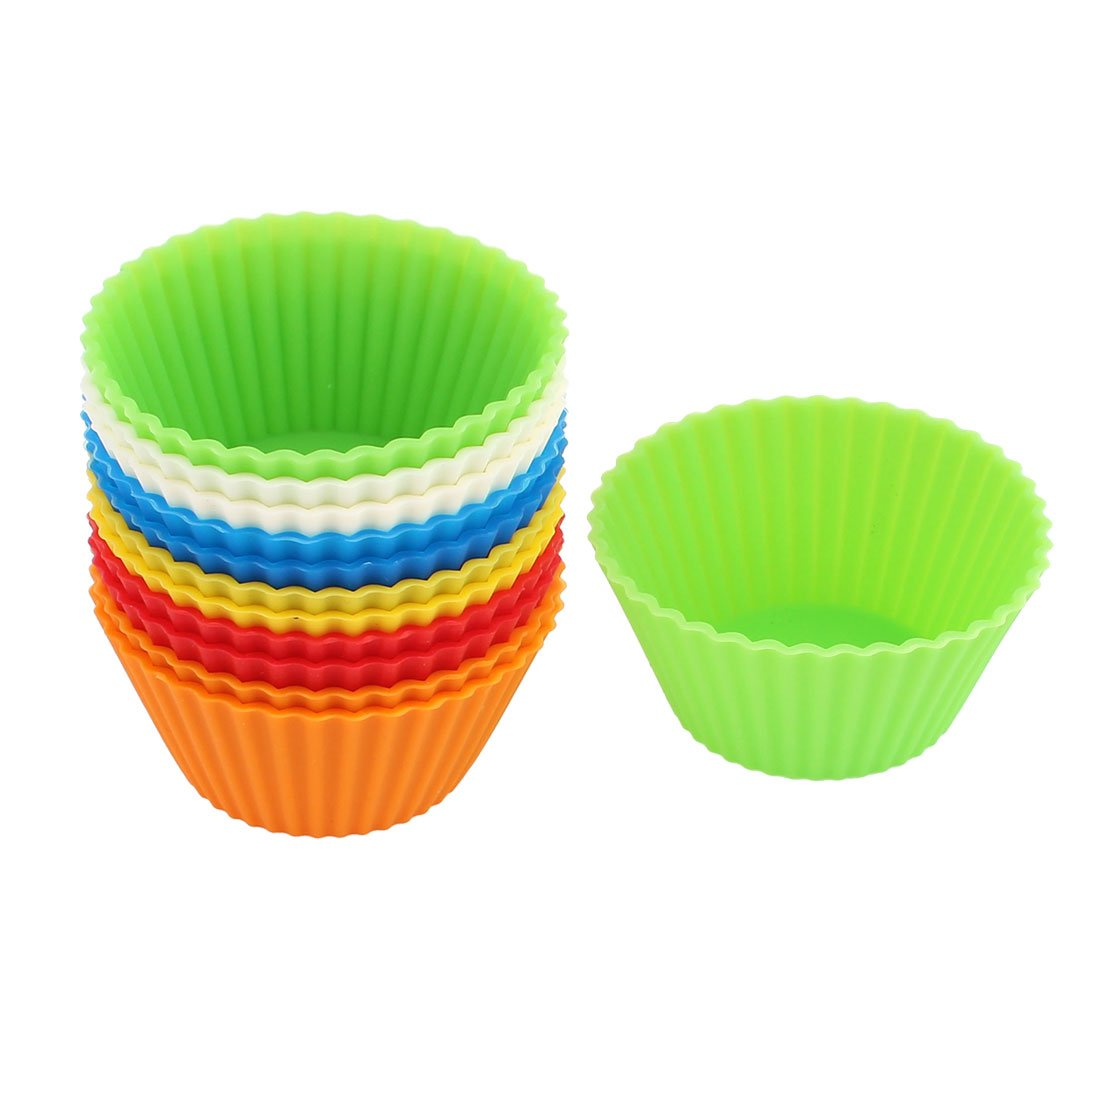 Amazon.com: Silicone Muffin Egg Tart Cake Mold Cupcake Baking Cup Mould 12PCS: Kitchen & Dining